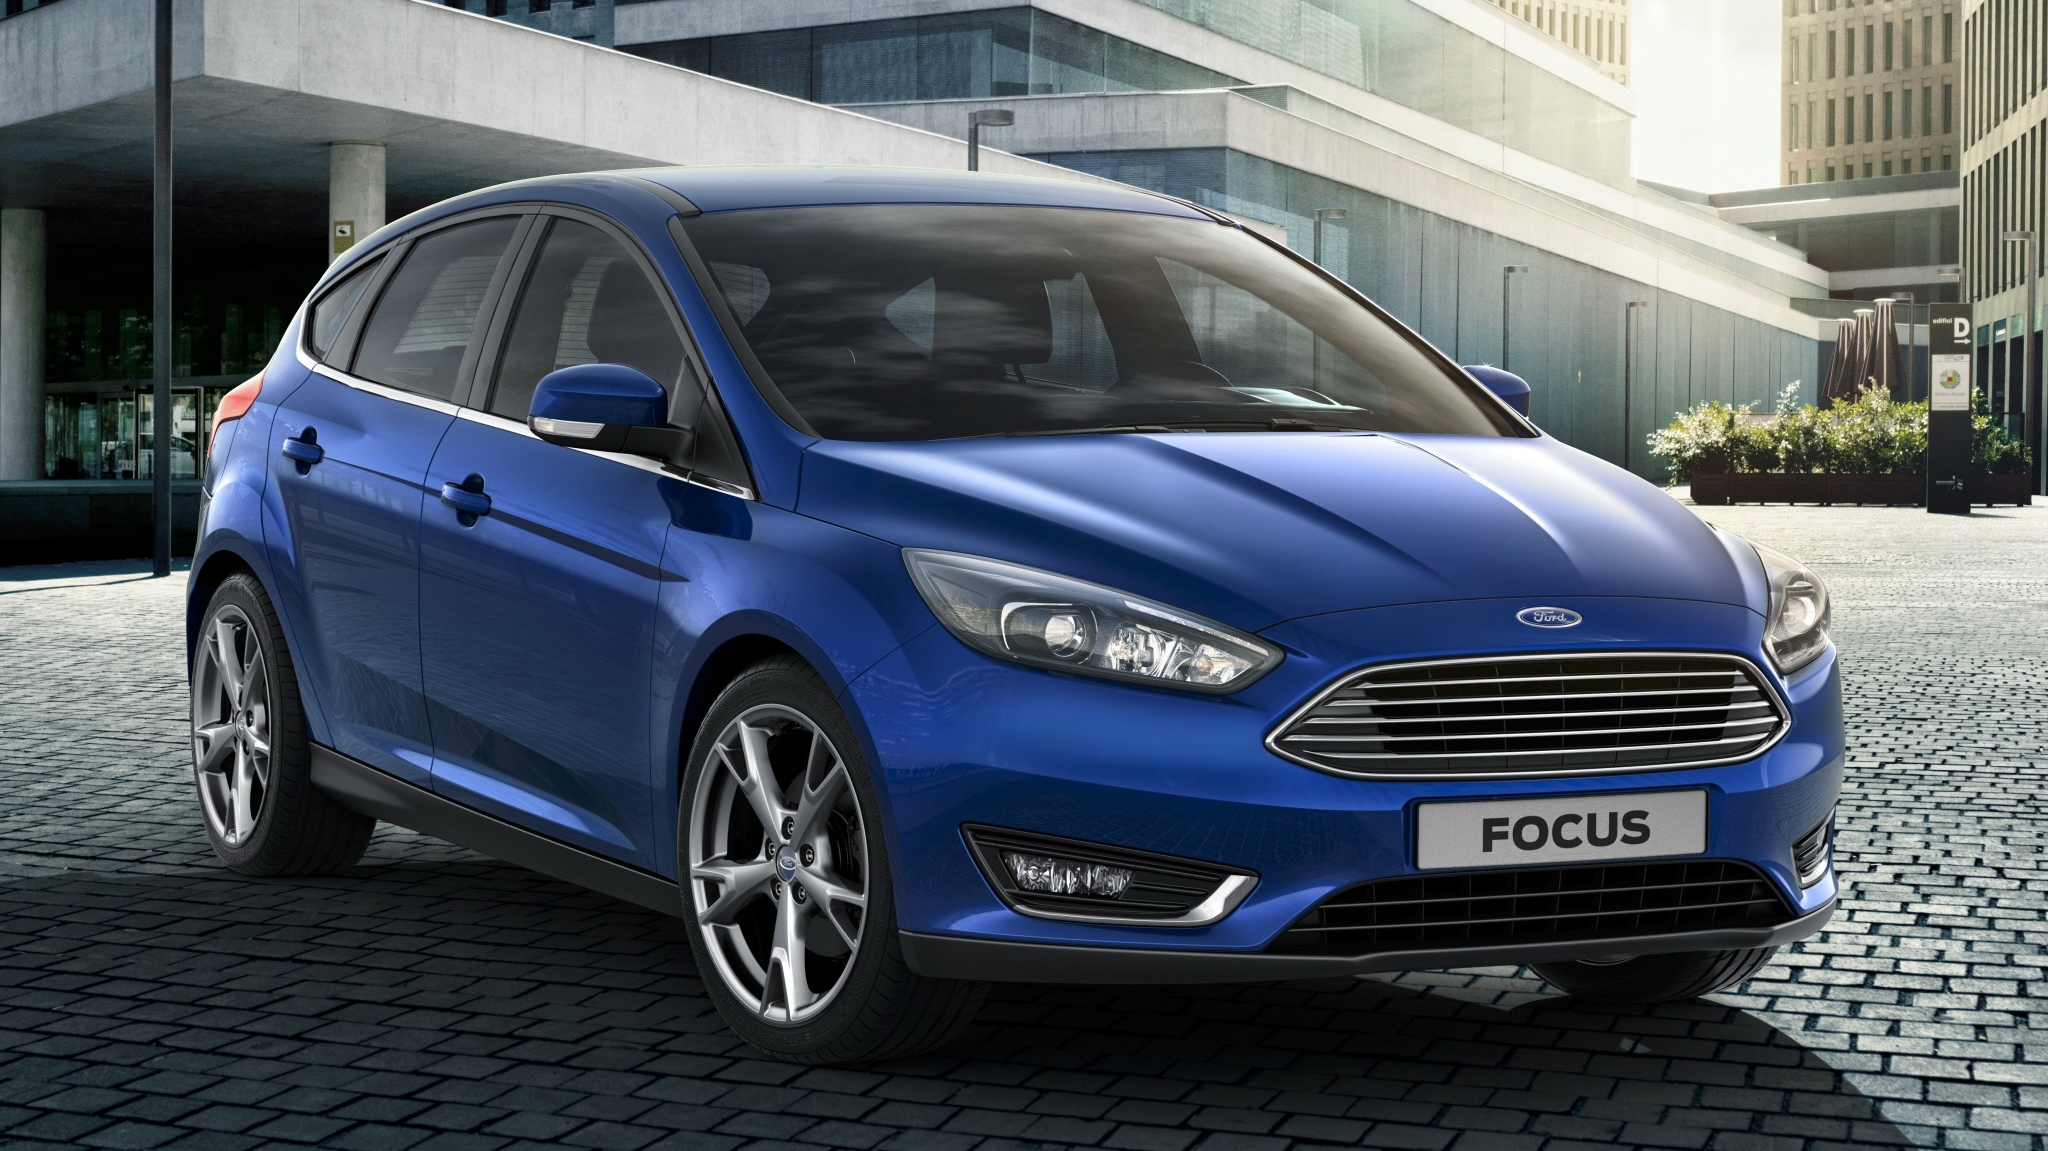 ford will stop building focus and c max in michigan starting 2018 picture top speed. Black Bedroom Furniture Sets. Home Design Ideas